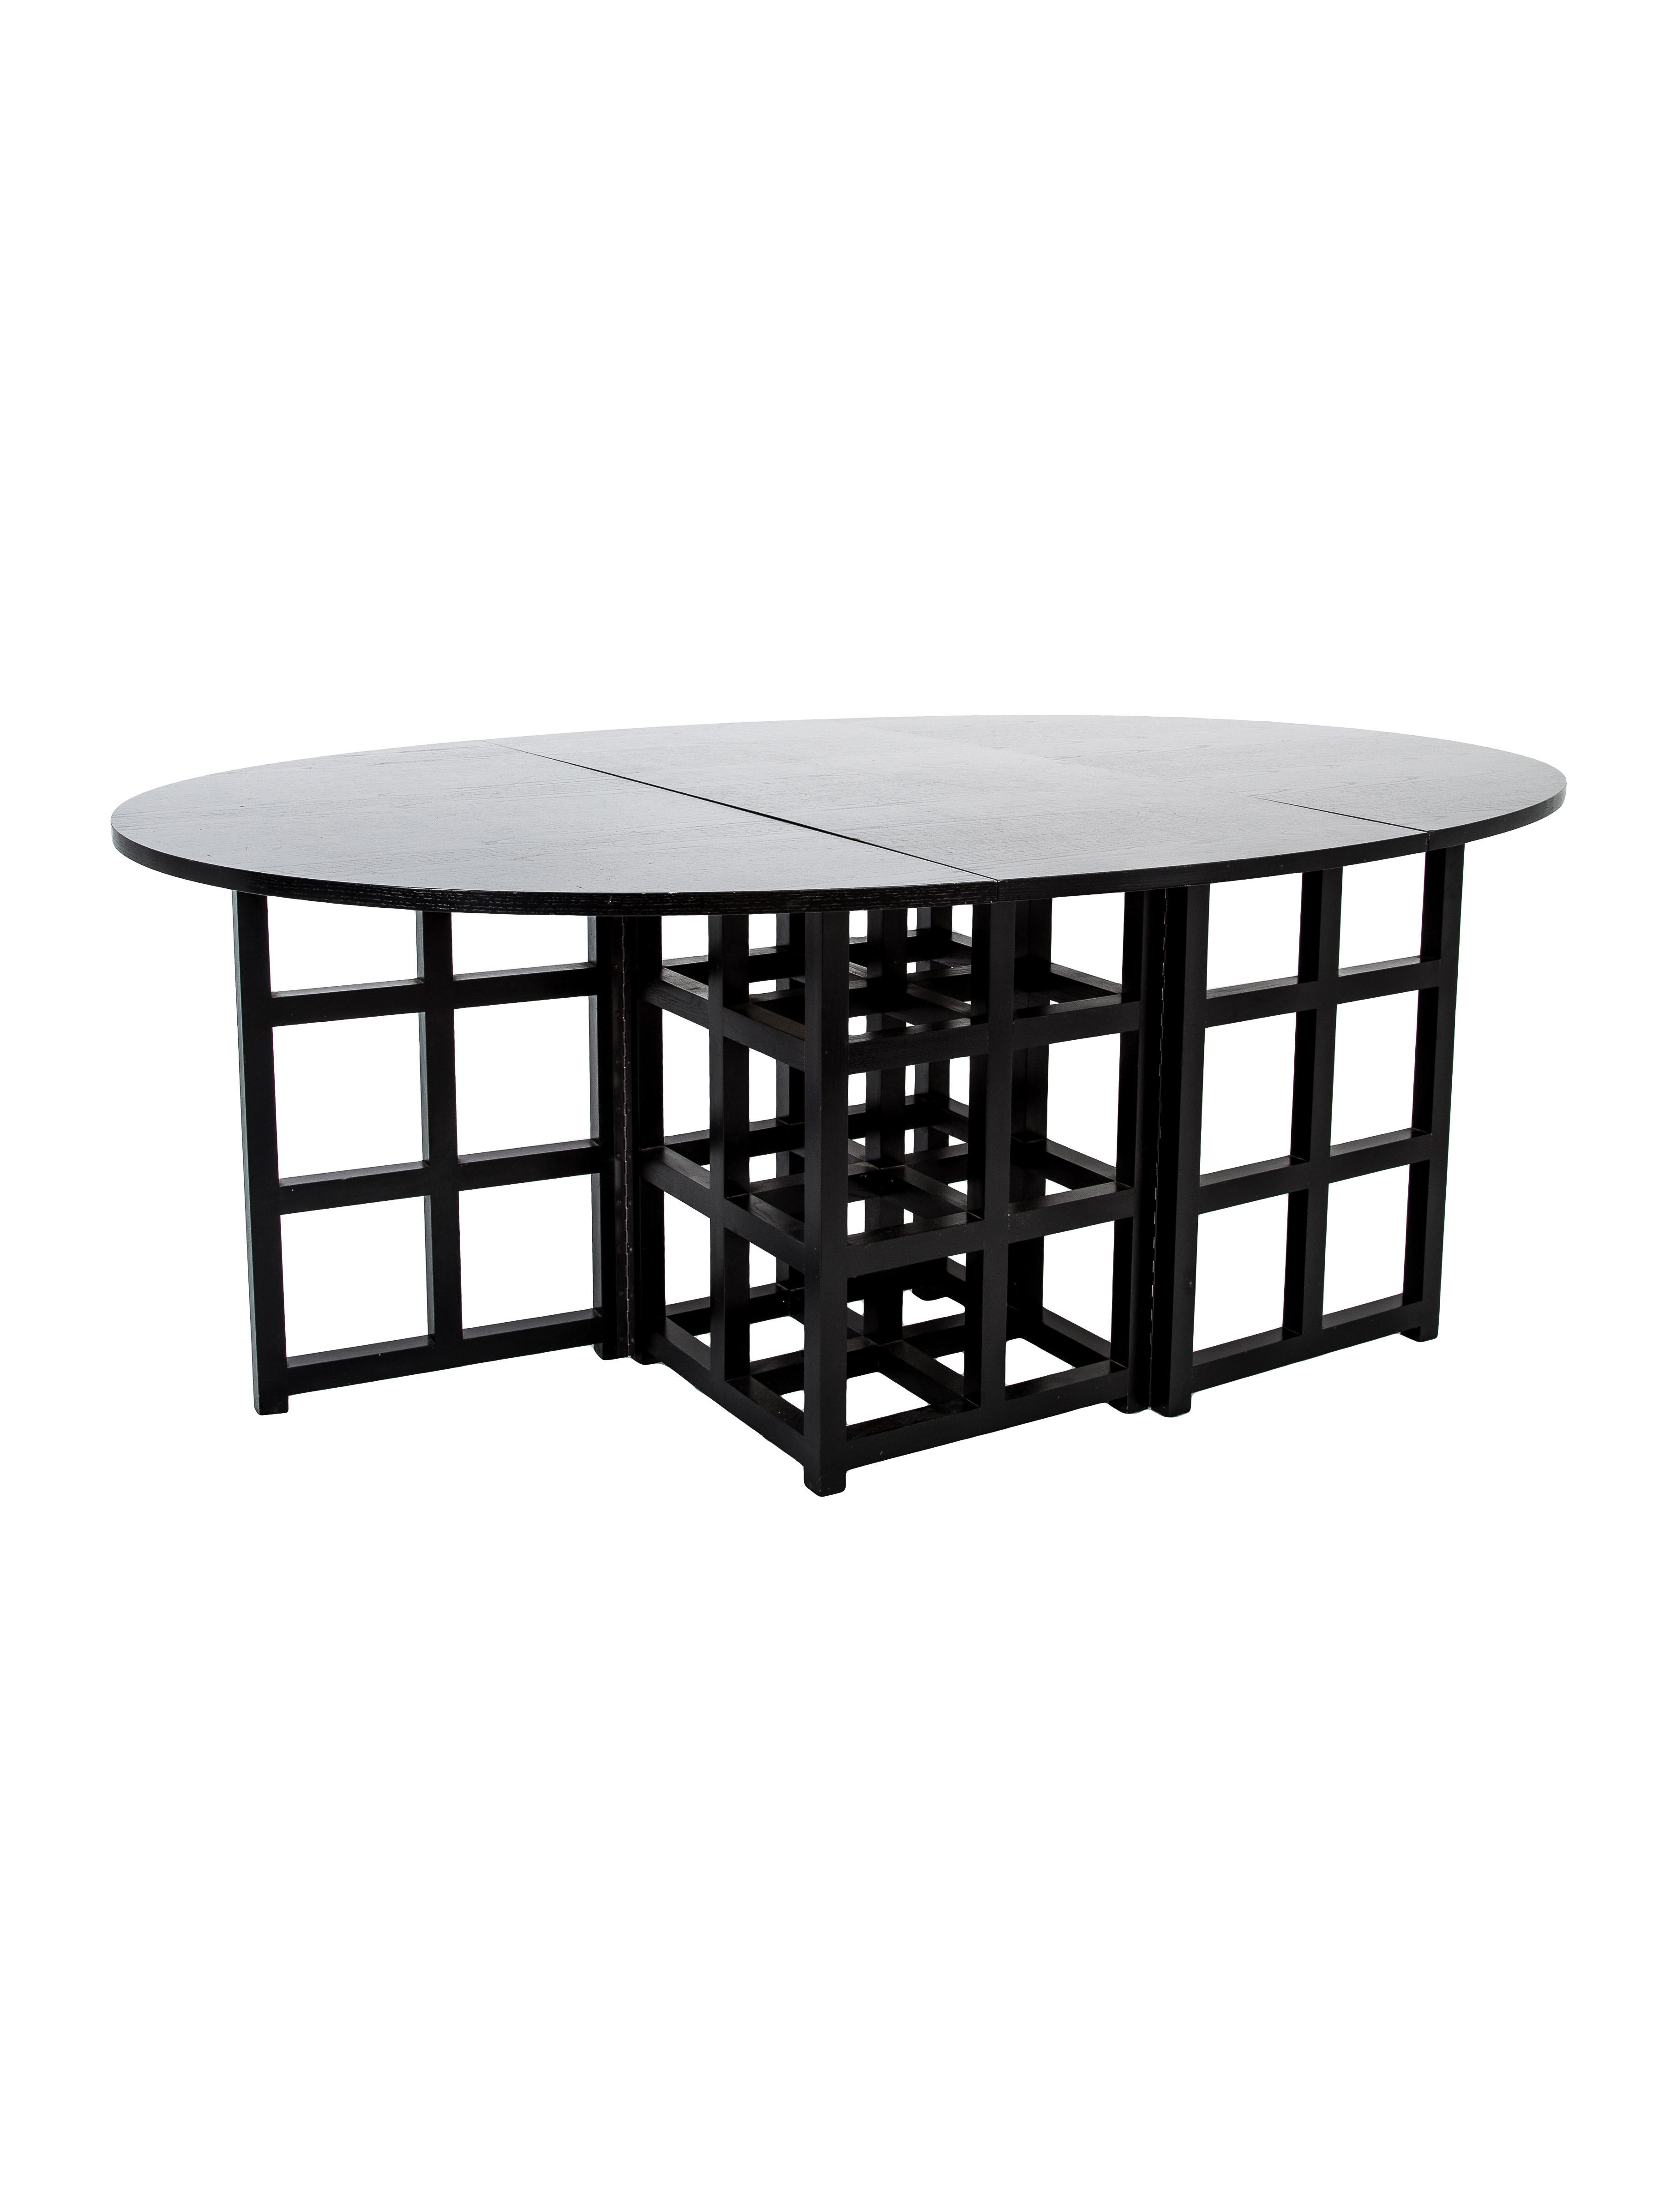 Design Within Reach 322 D.S.1 Dining Table